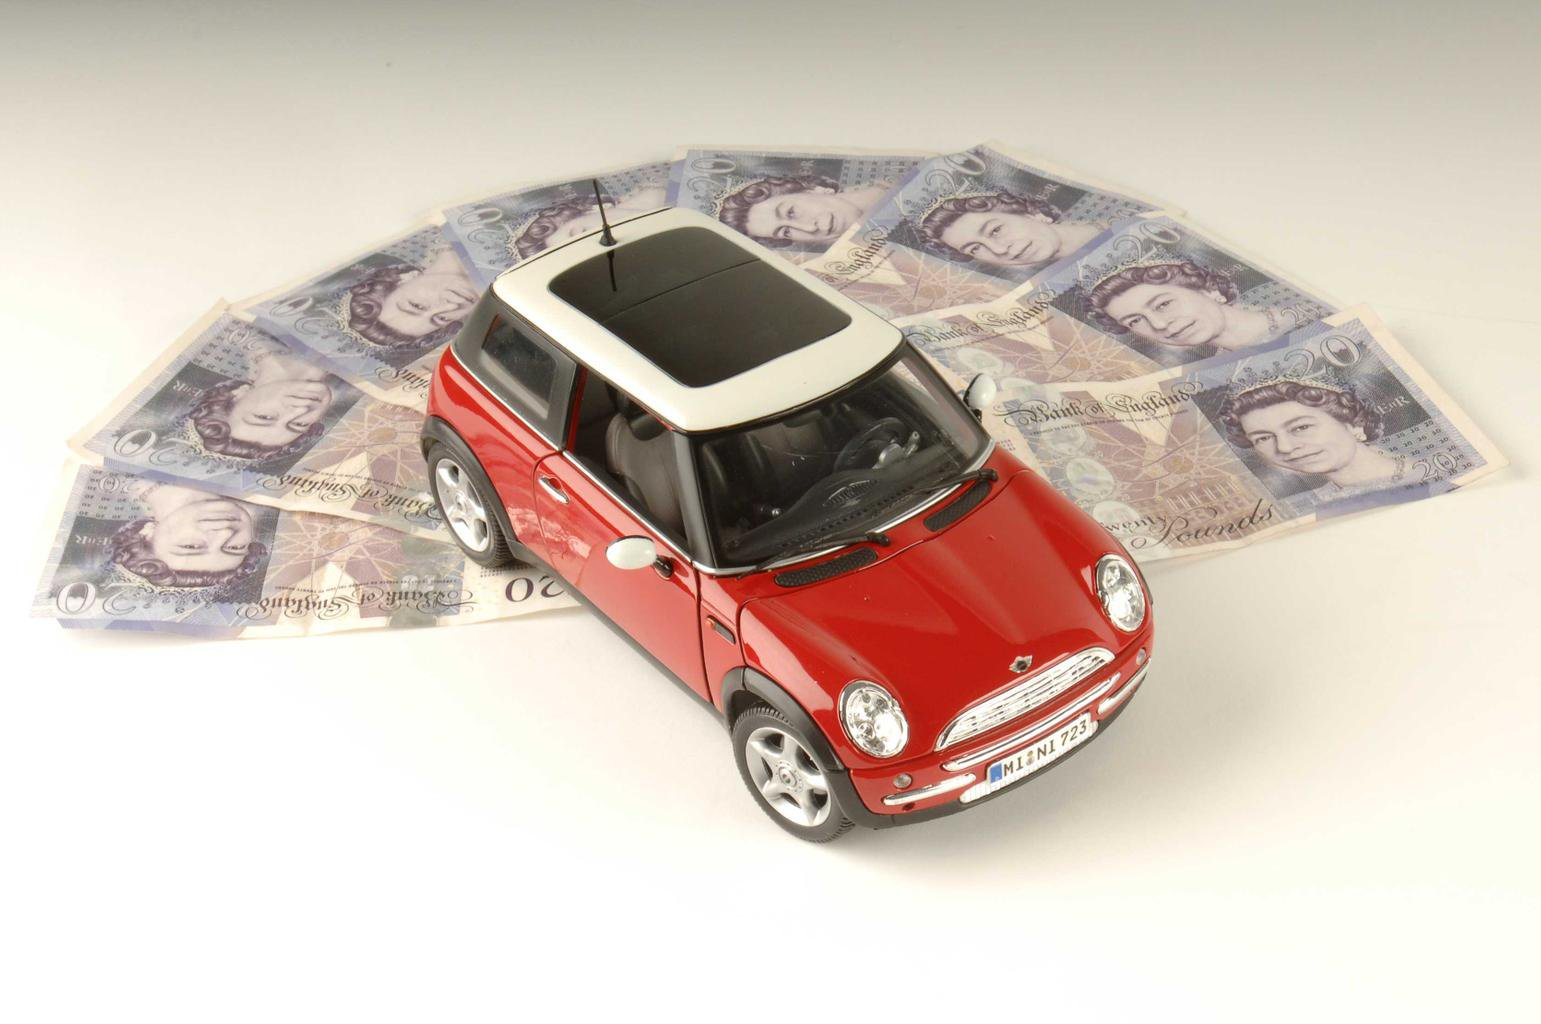 Depreciation - what is it, and how do I avoid it?